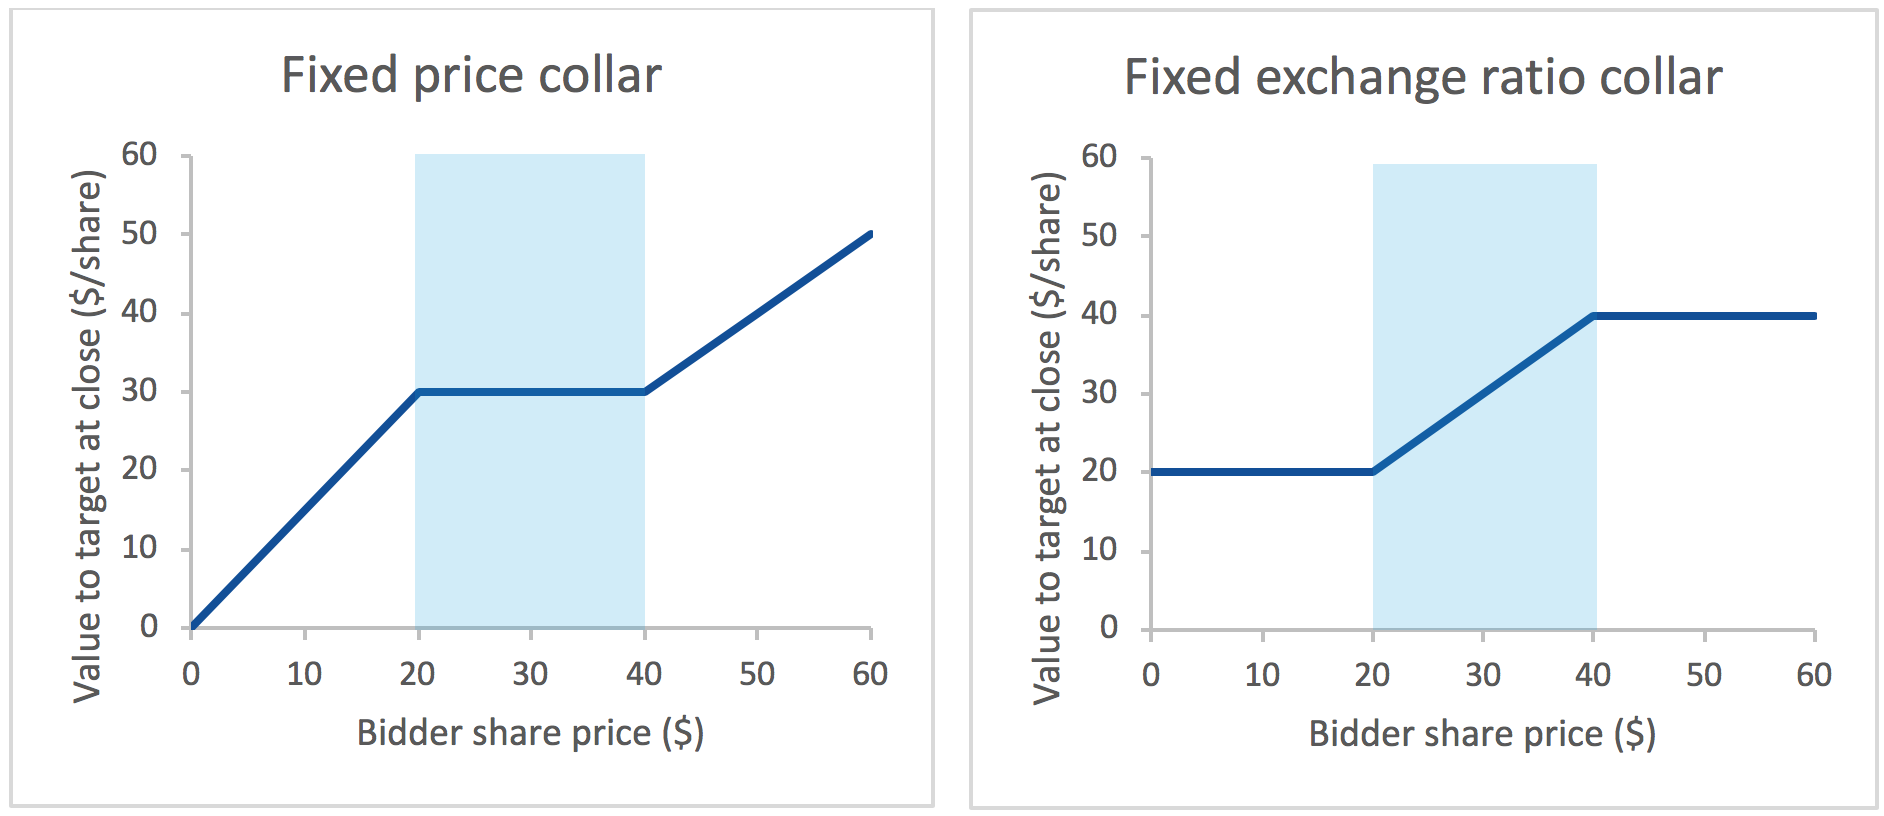 Fixed price collar / Fixed exchange ratio collar